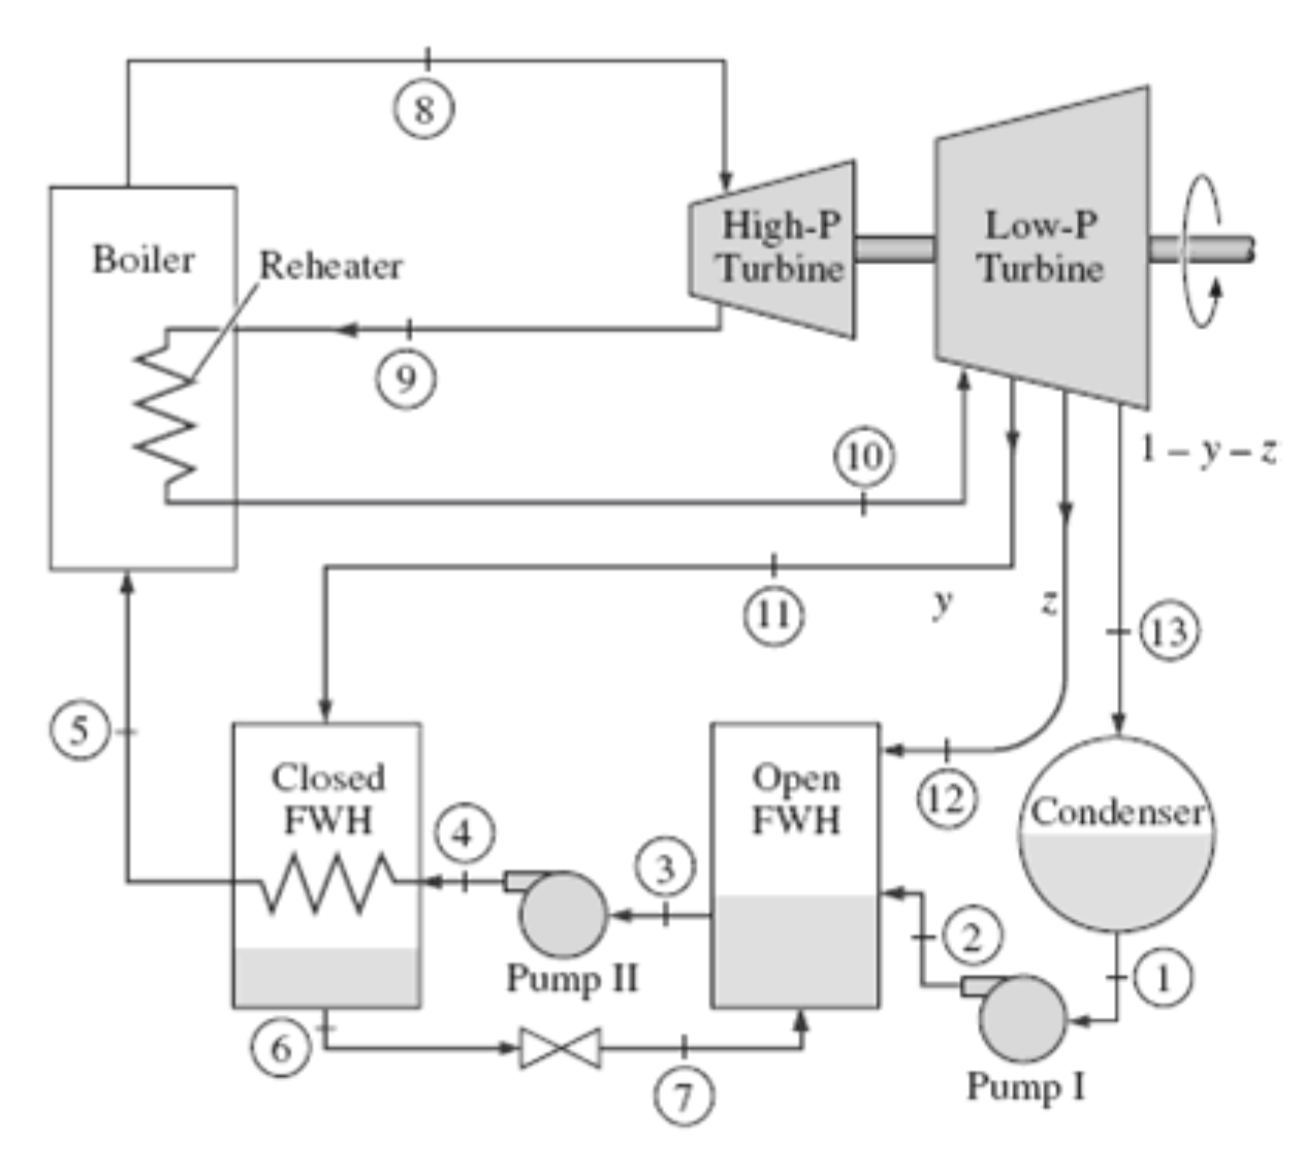 A Steam Power Plant Operates On An Ideal Reheat R